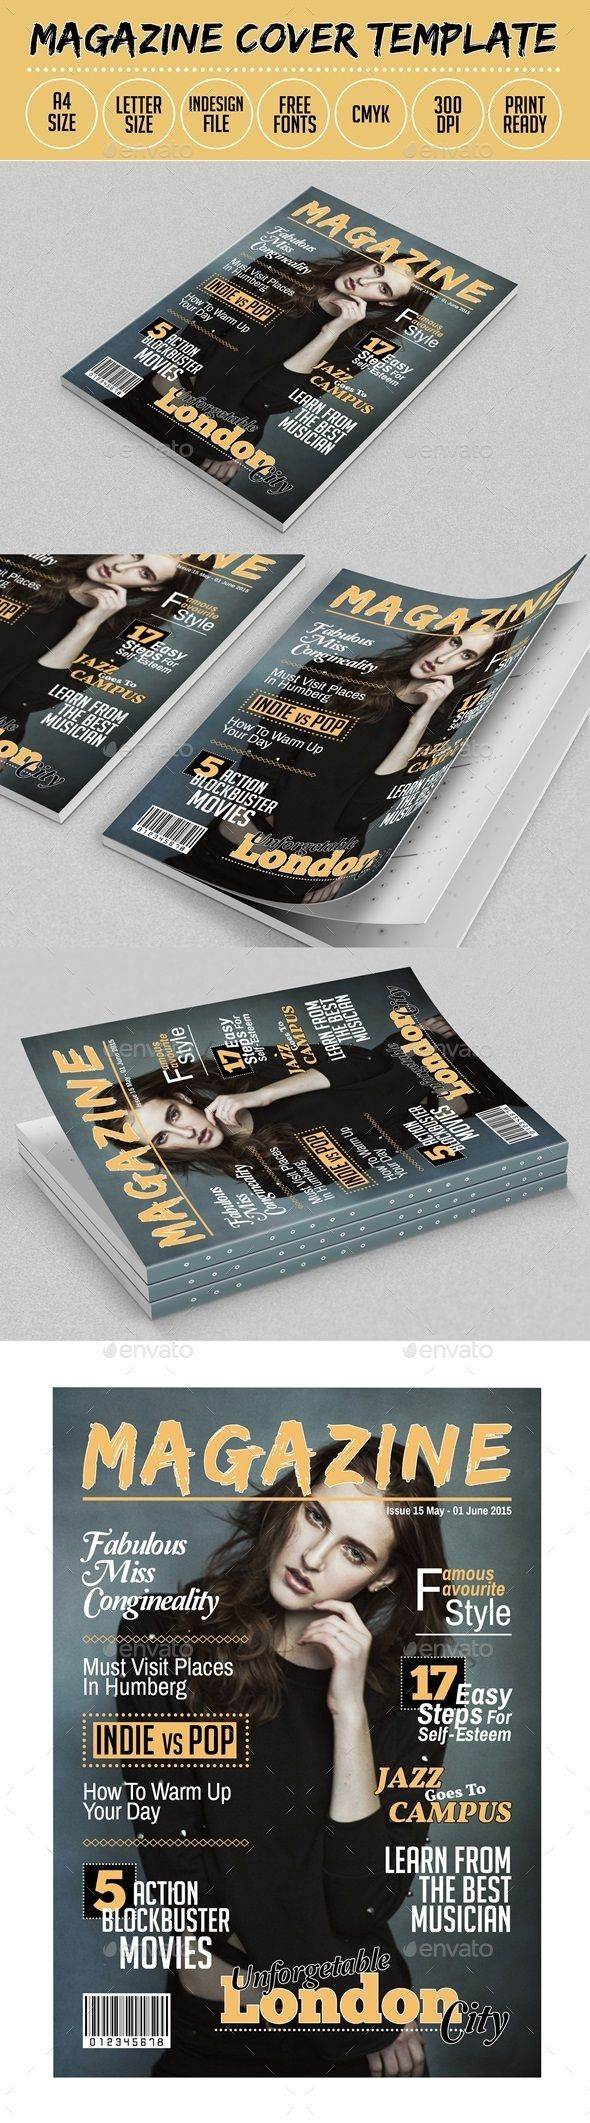 Magazine Cover Template Indesign | Magazine cover template, Template ...